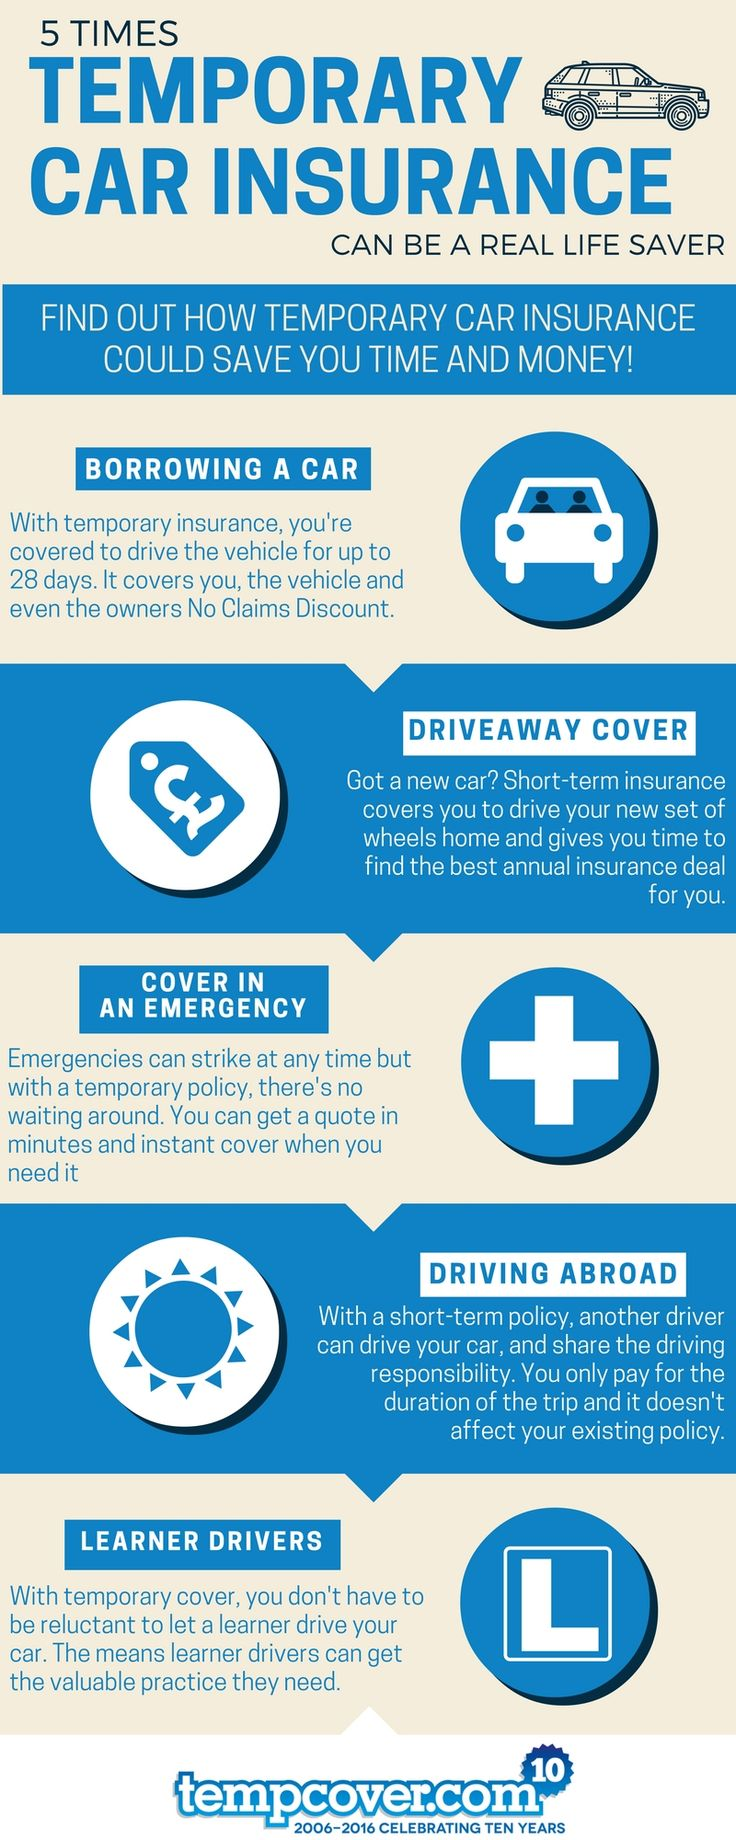 5 times temporary car insurance could be a real life saver!